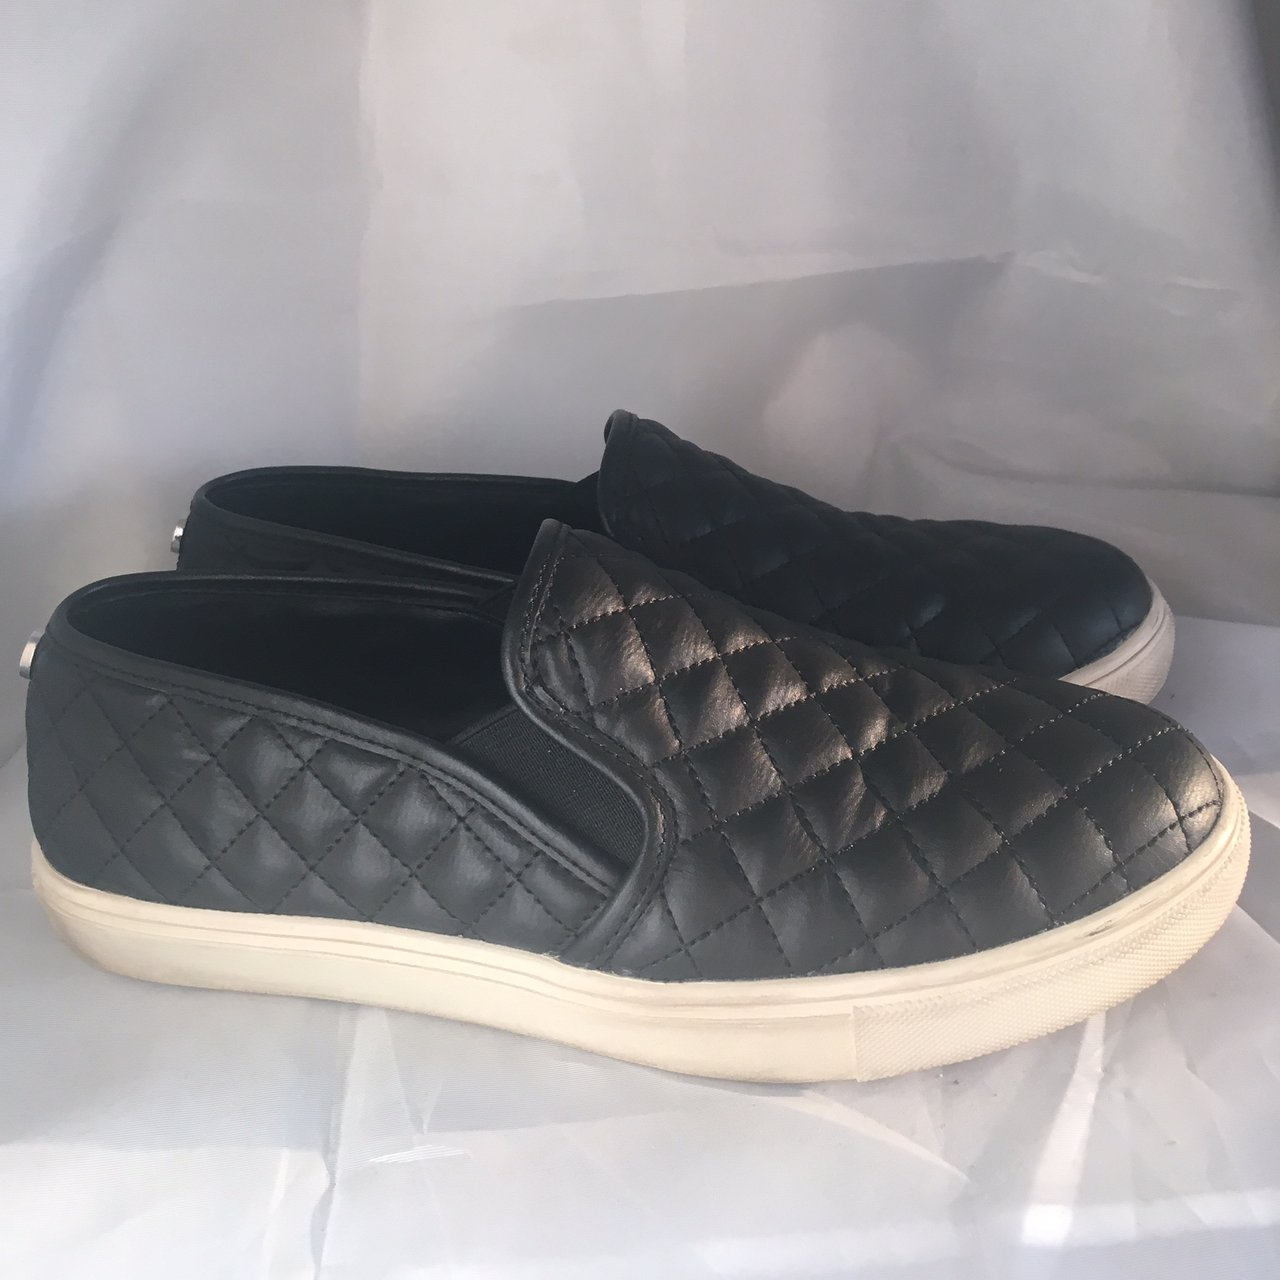 5caa9ac33c5 Steve Madden Ecentrc-Q Sneakers shoes size 9.5 black in ask - Depop